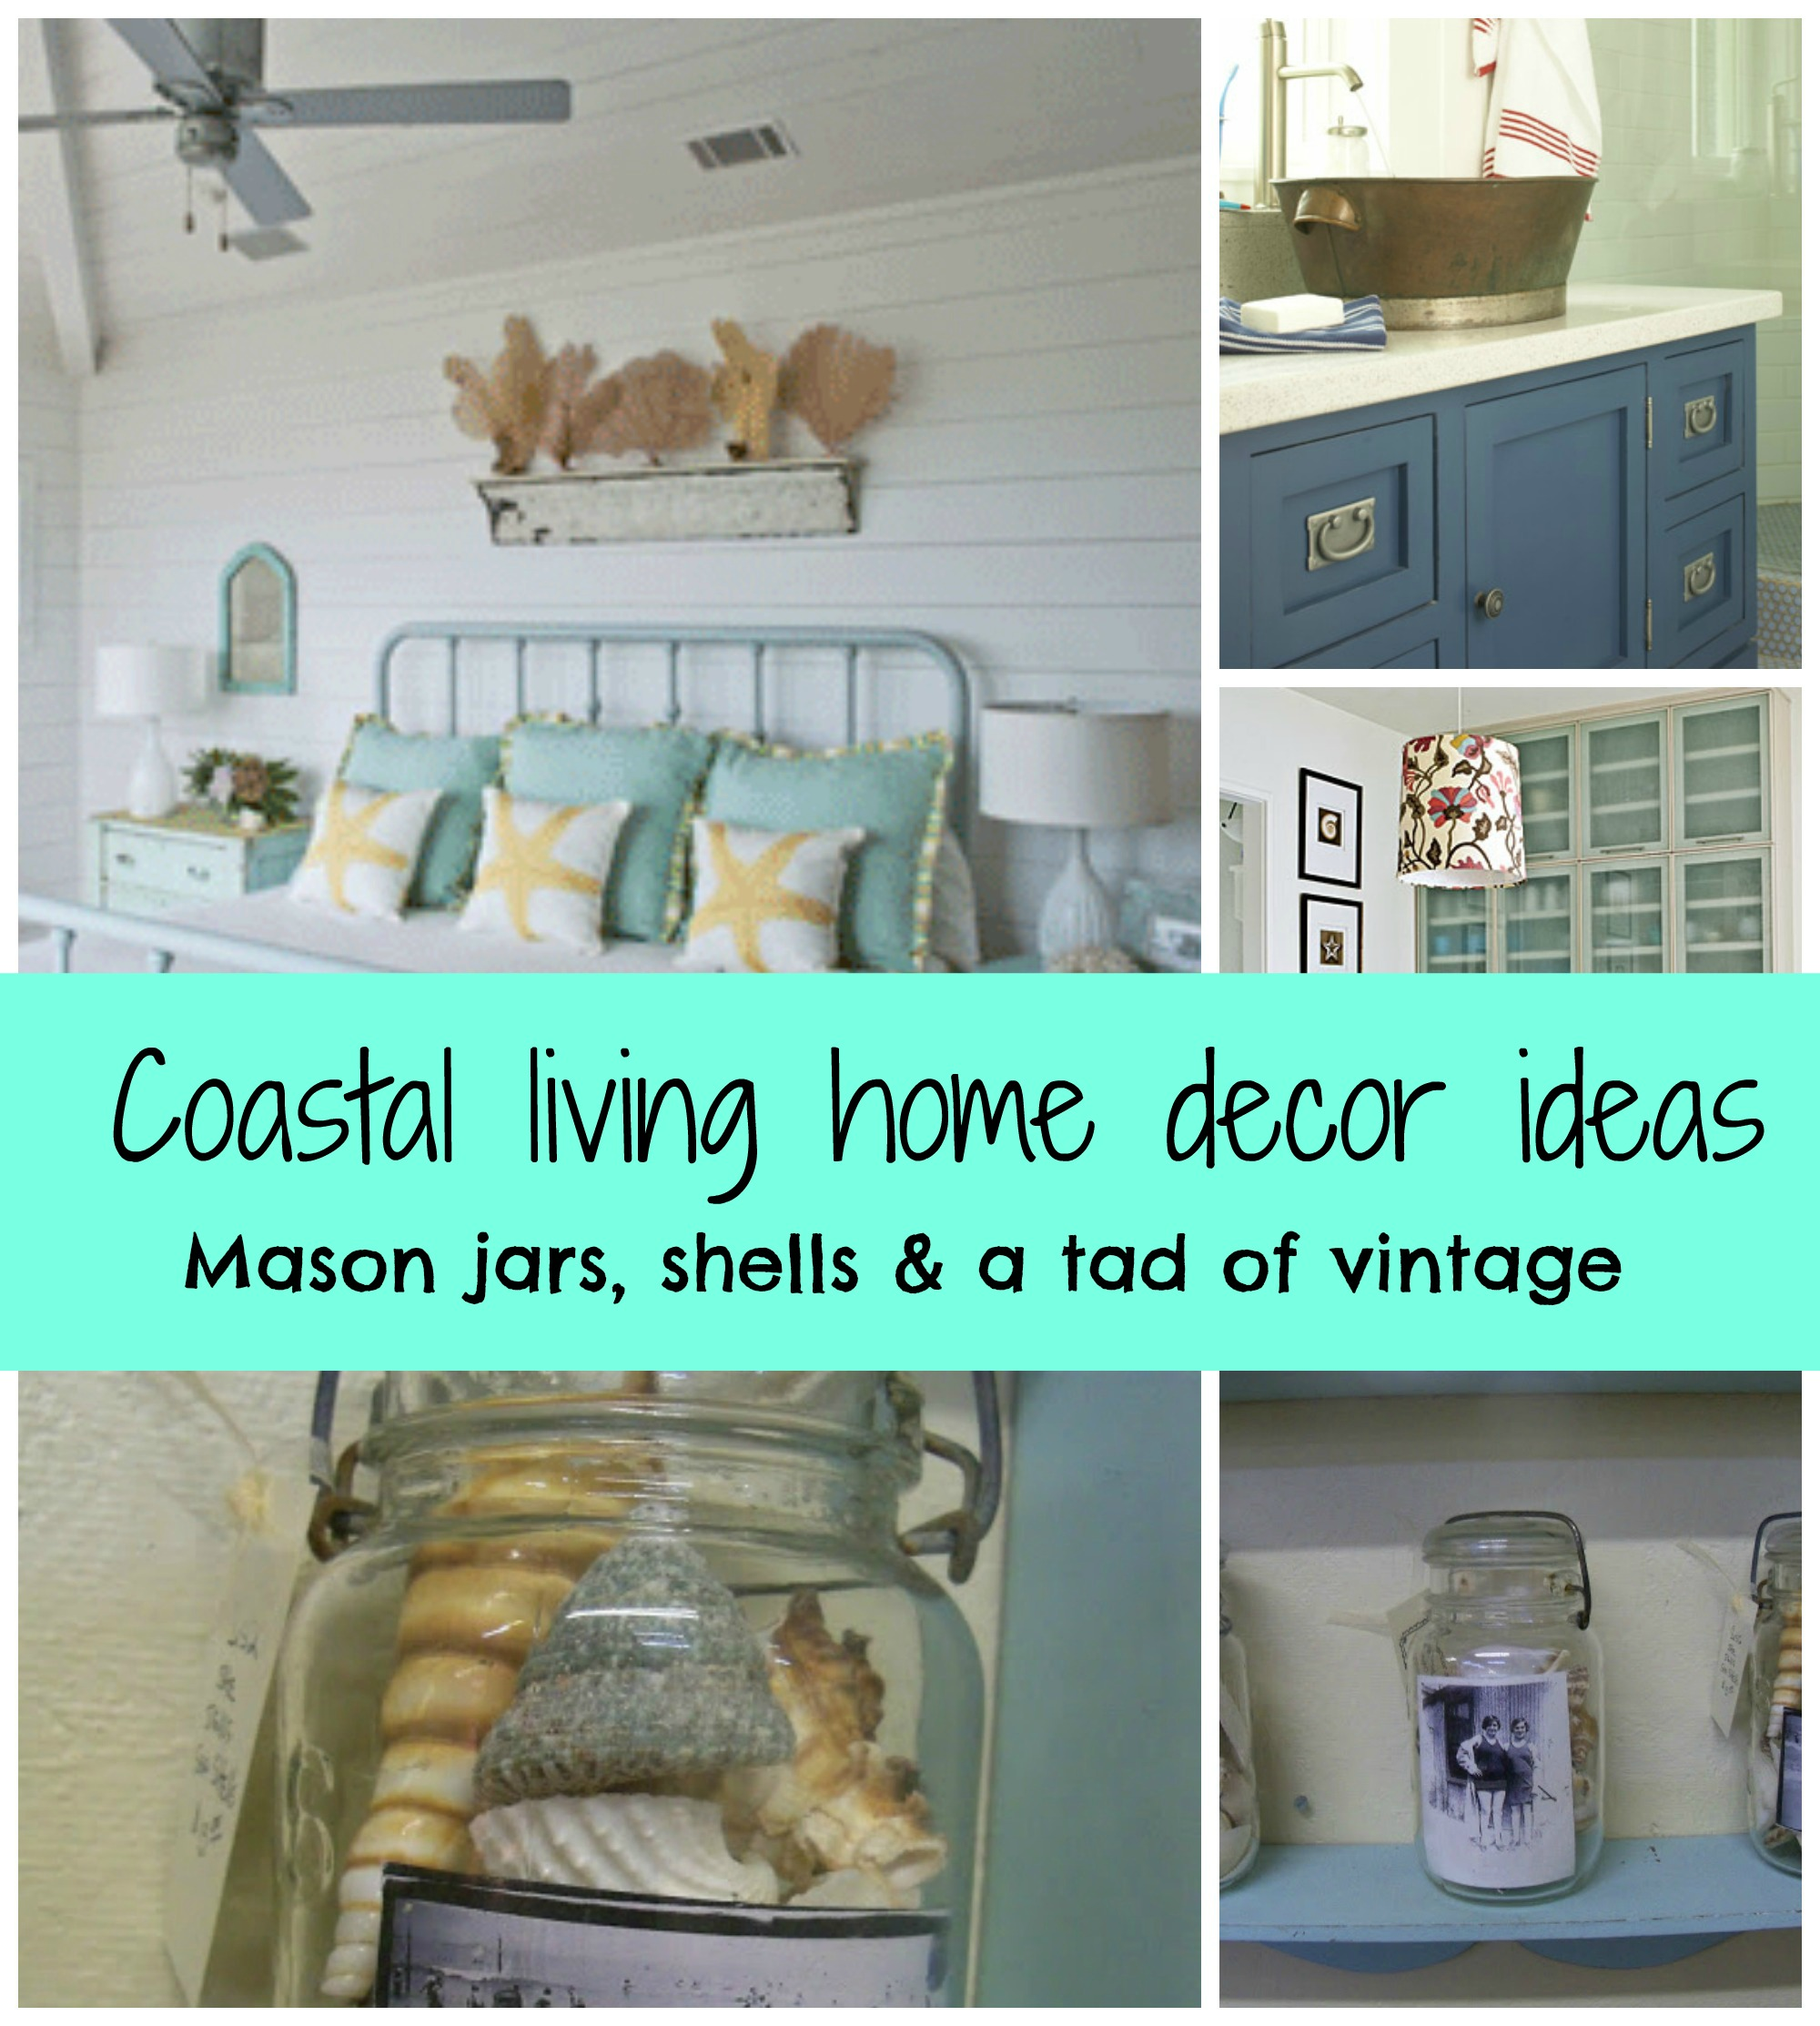 Coastal living home decor ideas